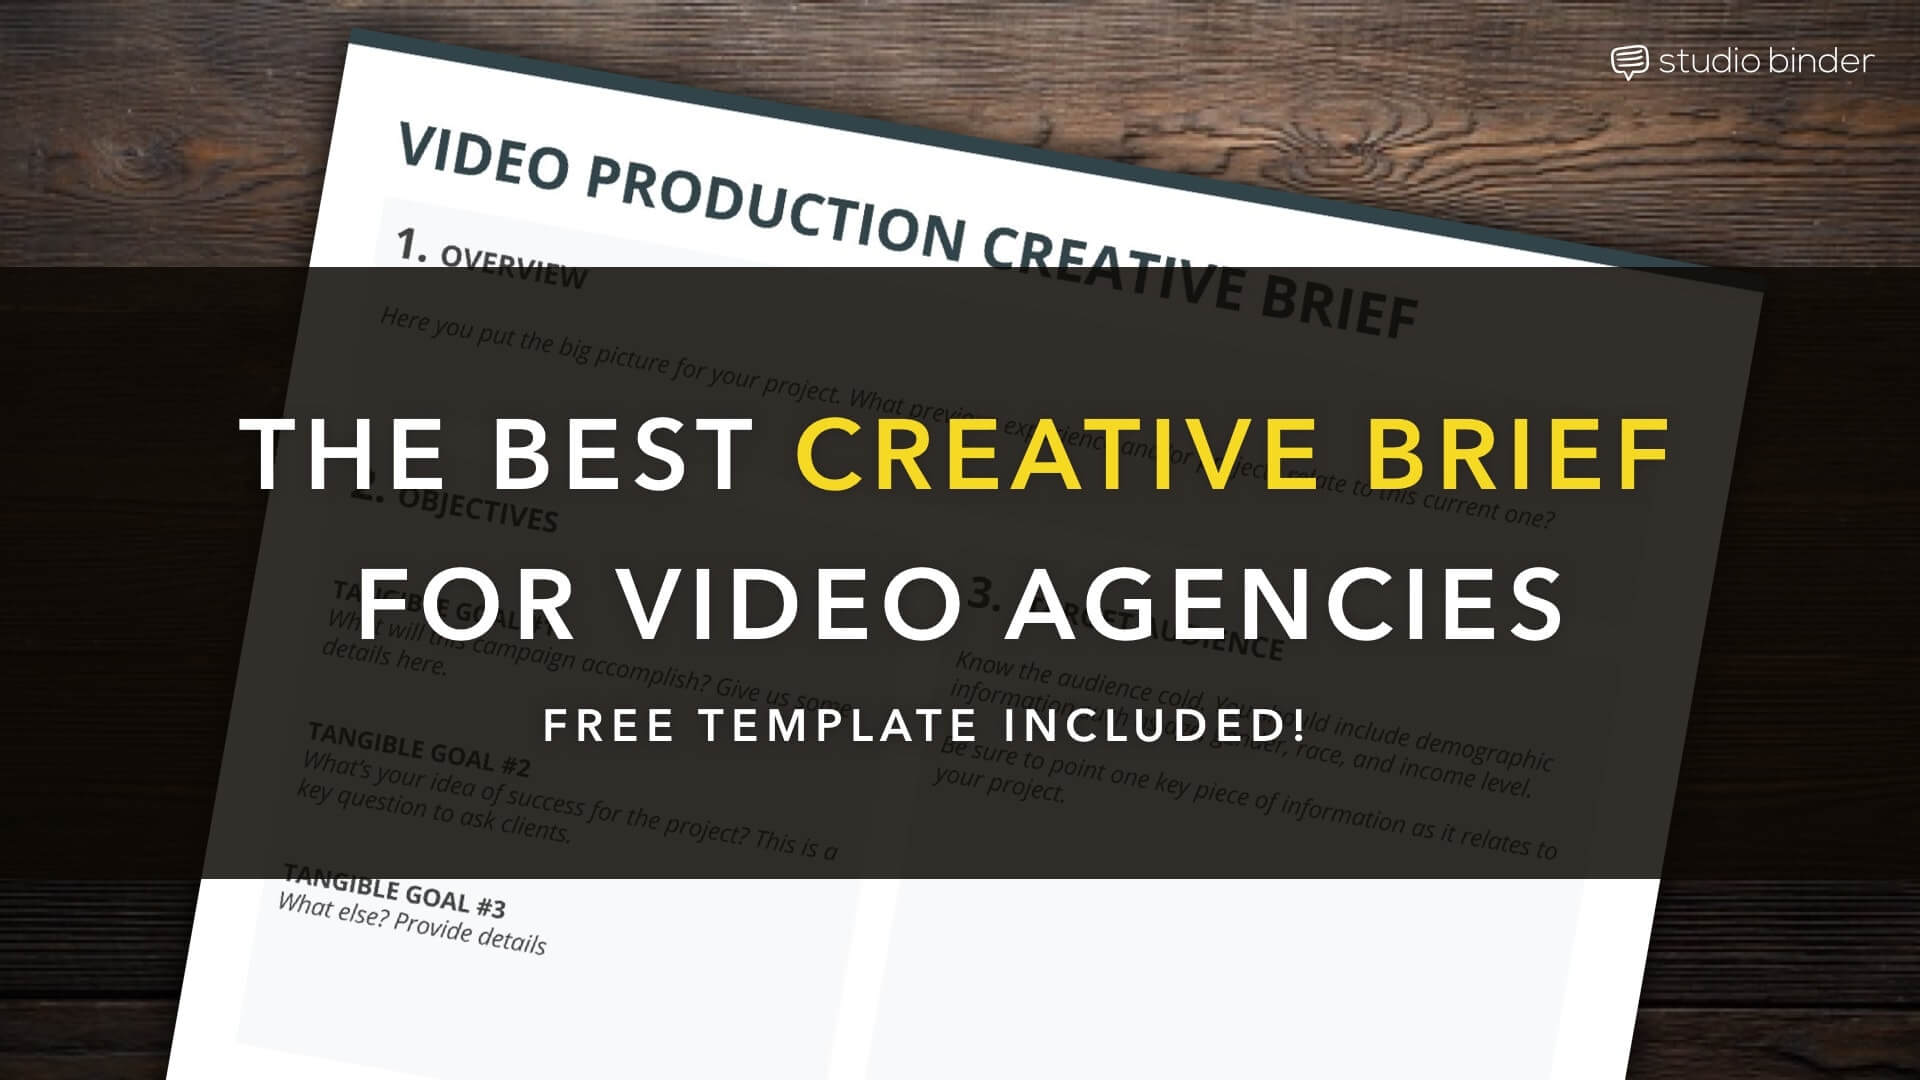 The Best Creative Brief Template For Video Agencies - Free Creative Brief Template Download - StudioBinder@1.5x